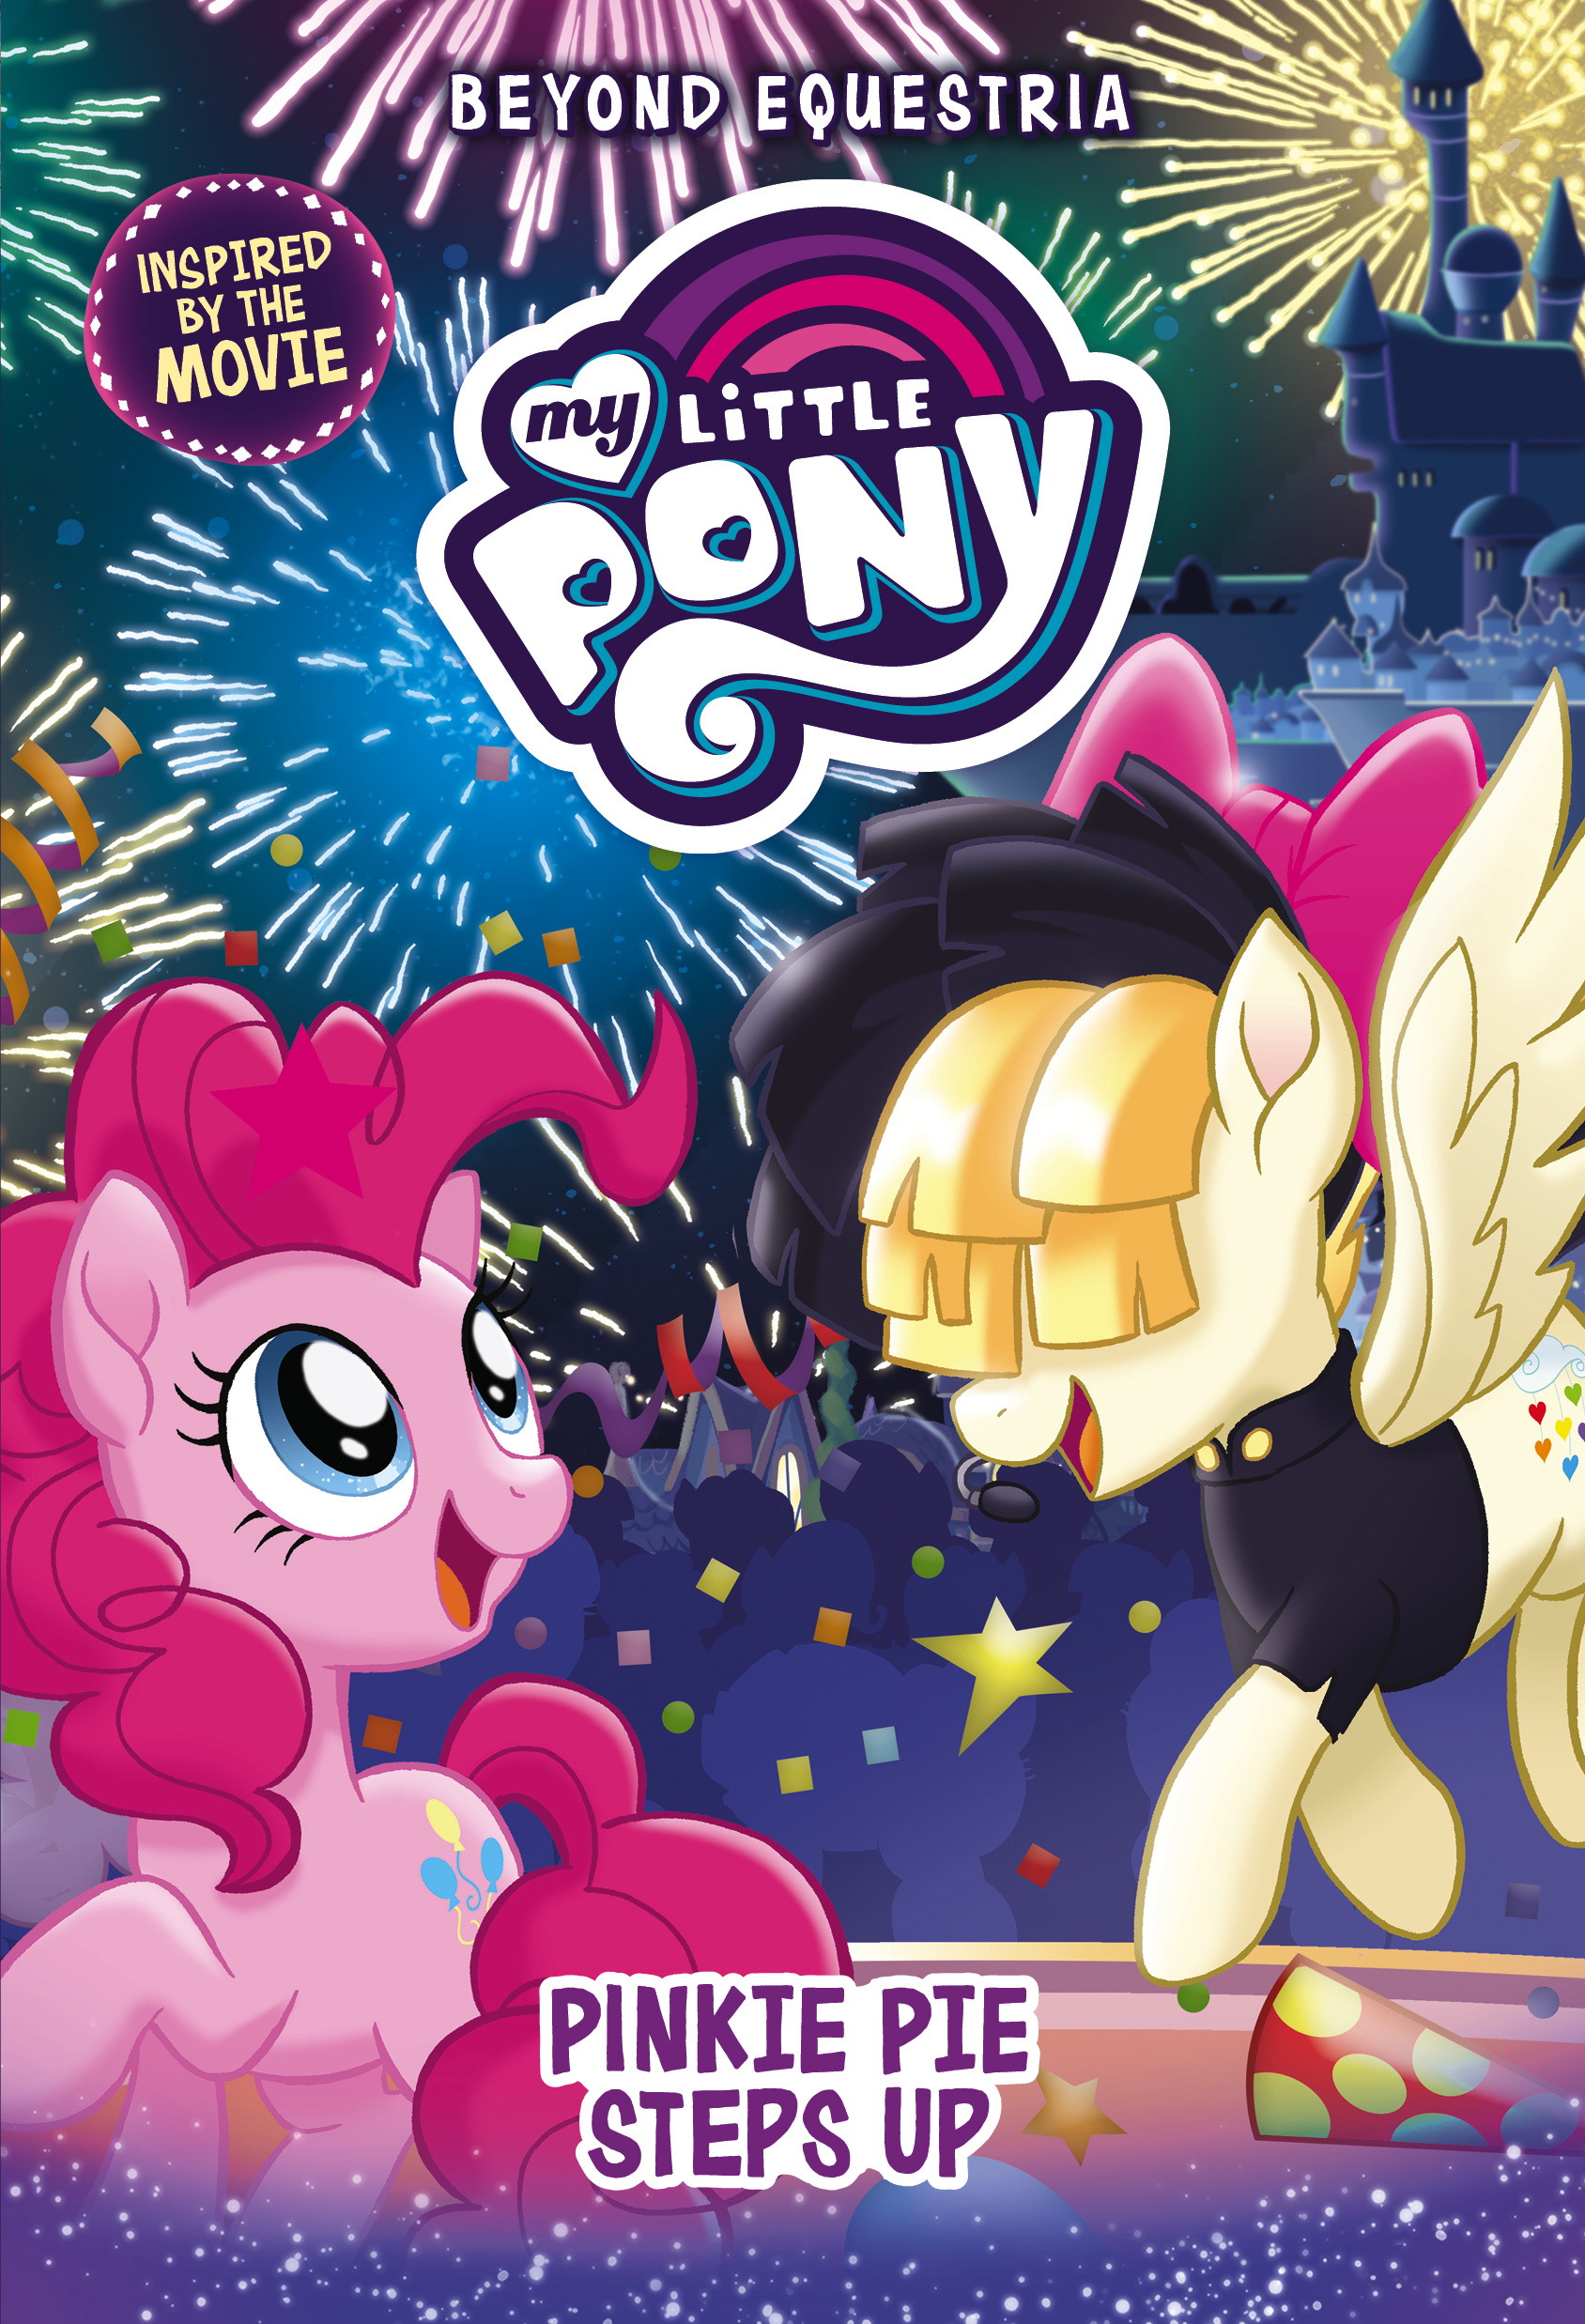 My Little Pony Beyond Equestria: Pinkie Pie Steps Up